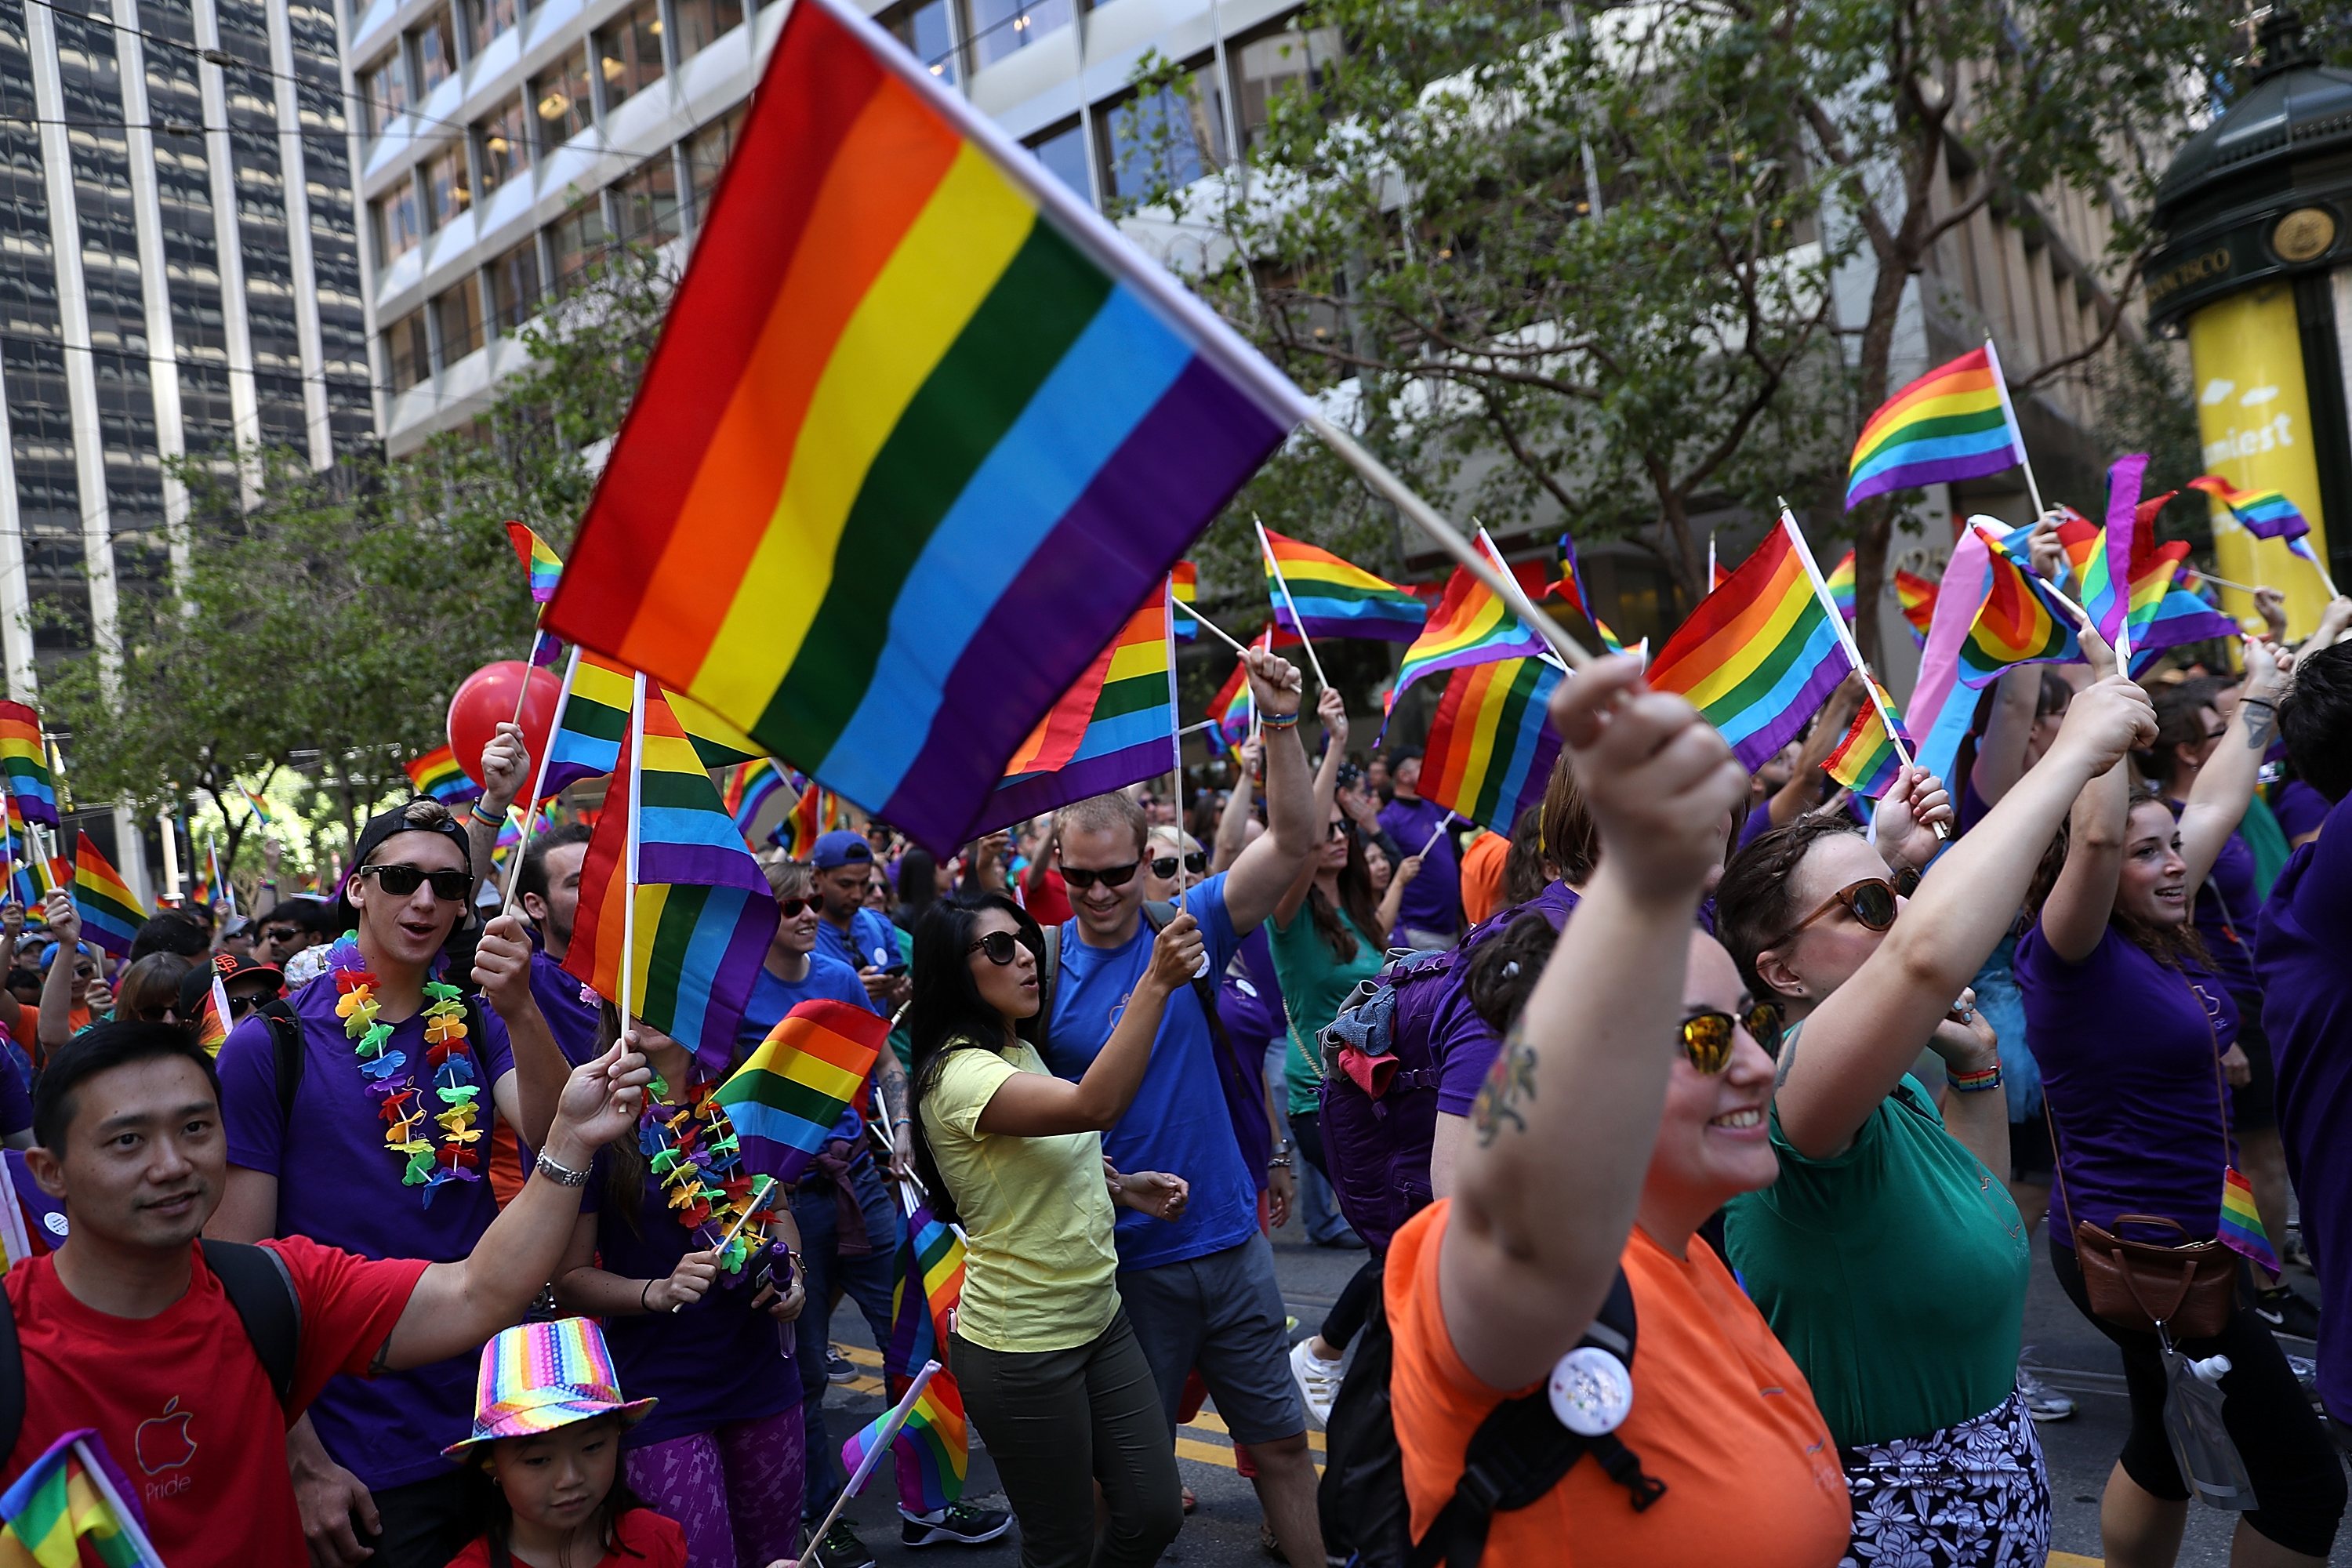 San Francisco Holds Annual Gay Pride Parade